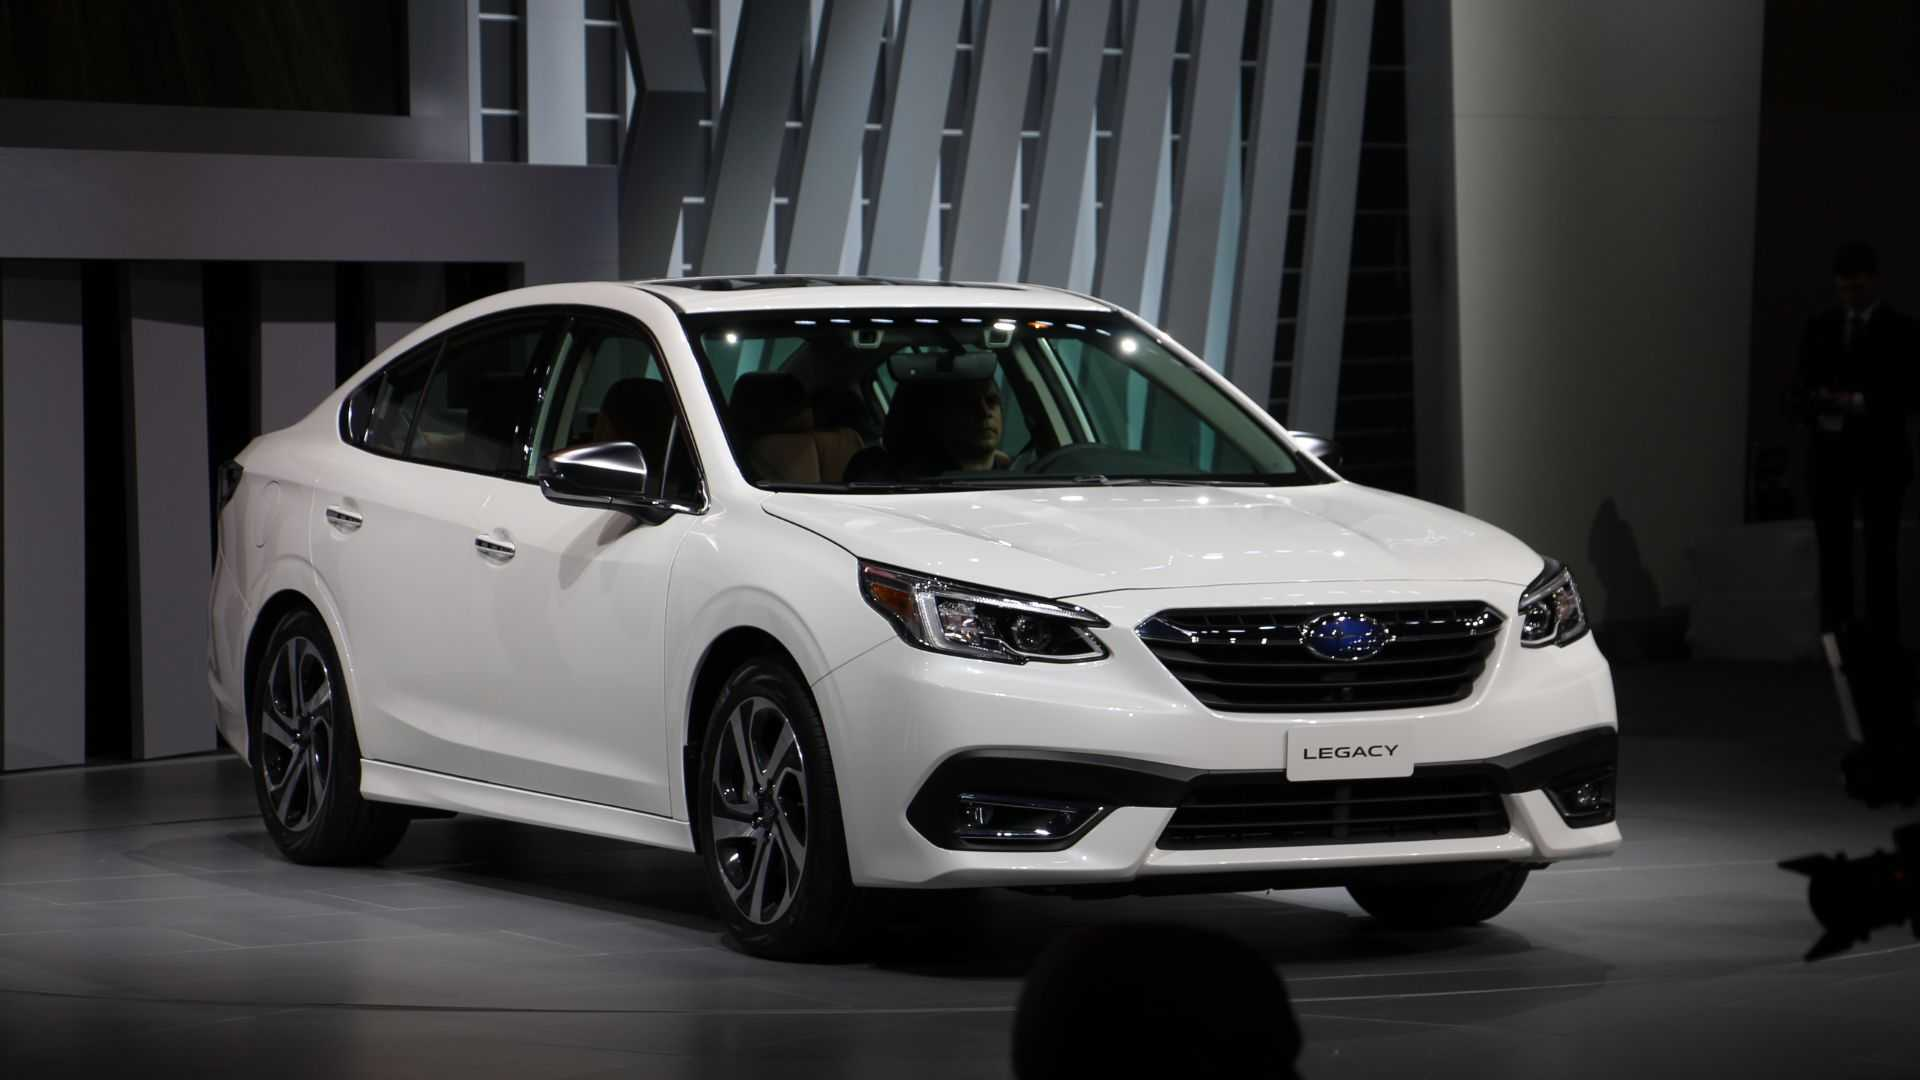 68 All New Subaru Legacy 2020 Price Redesign And Review